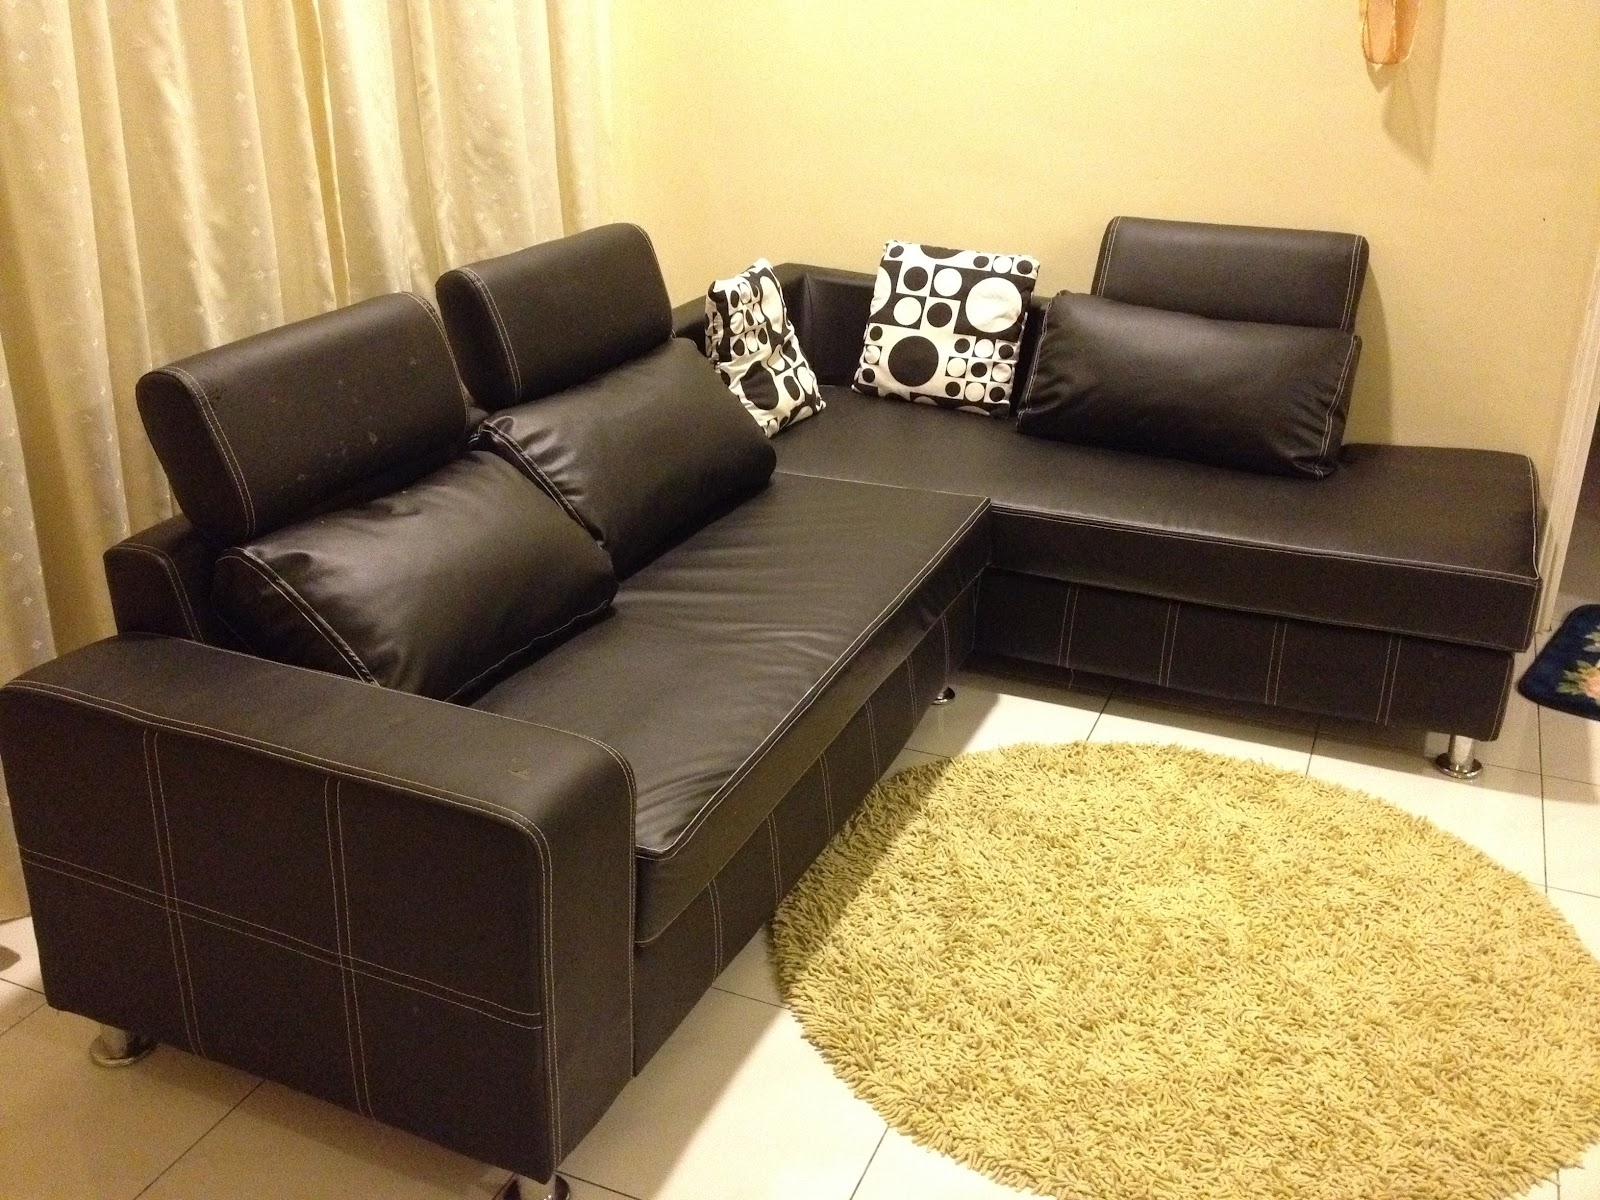 The Most Popular Leather Sofa For Sale Philippines Within Sofa With Sectional Sofas In Philippines (View 3 of 10)